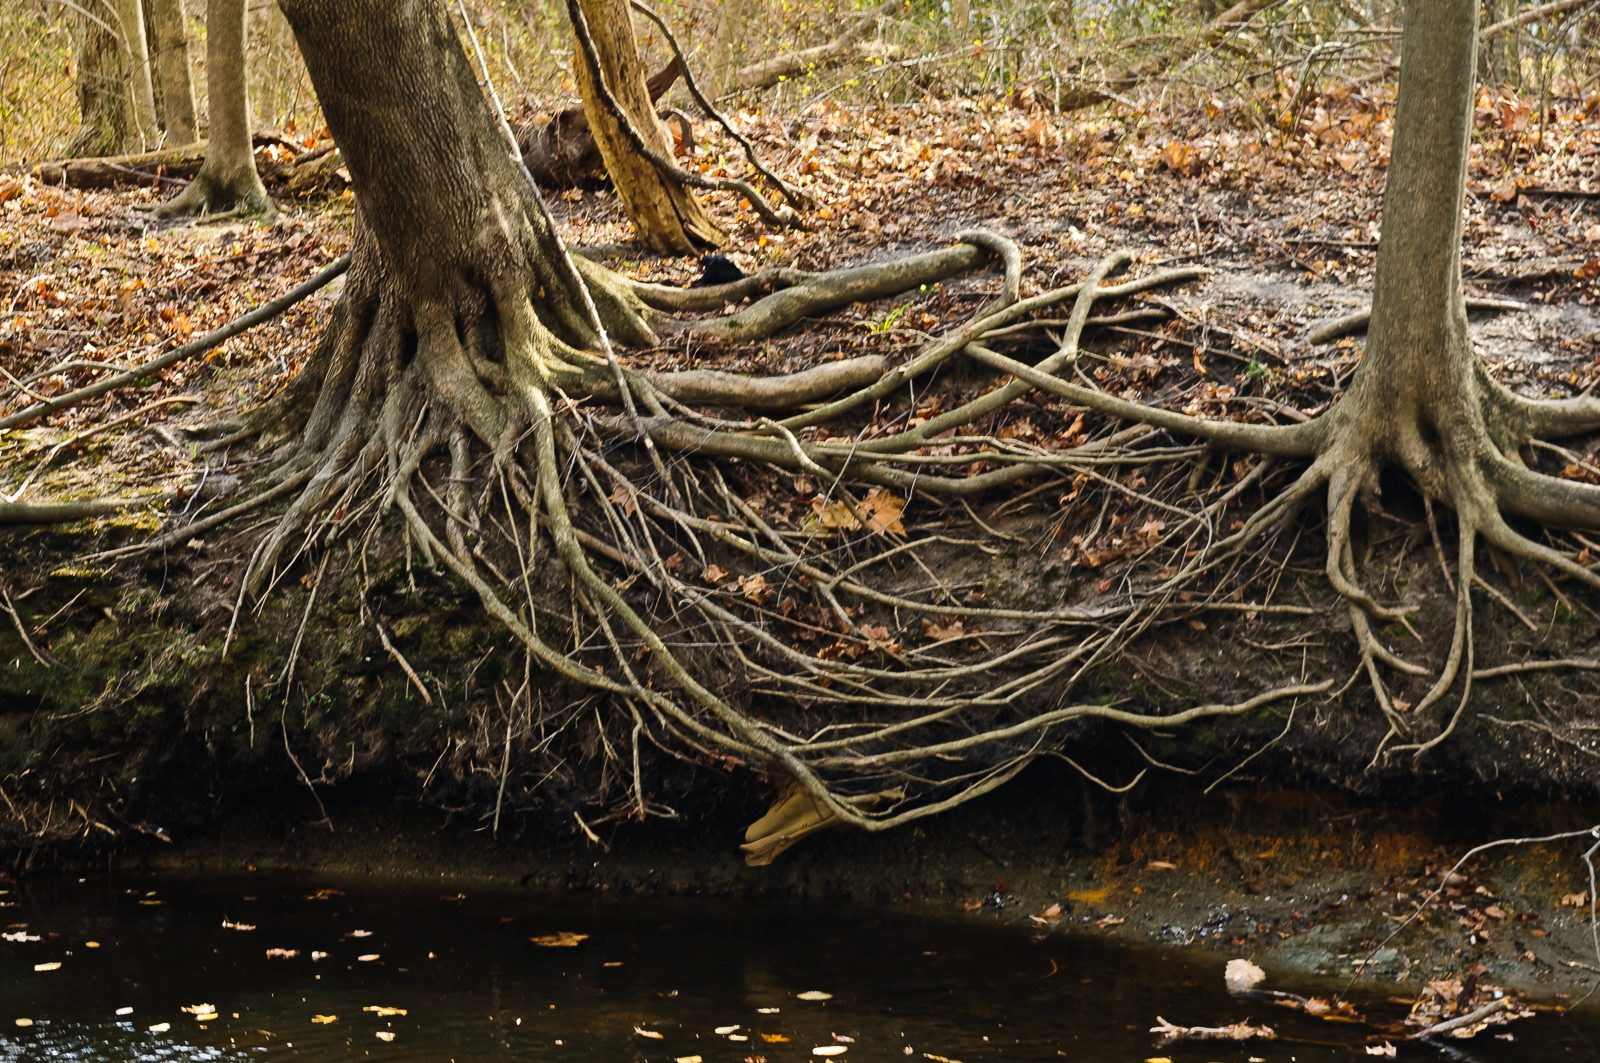 ltd-tree-root-photo-5876